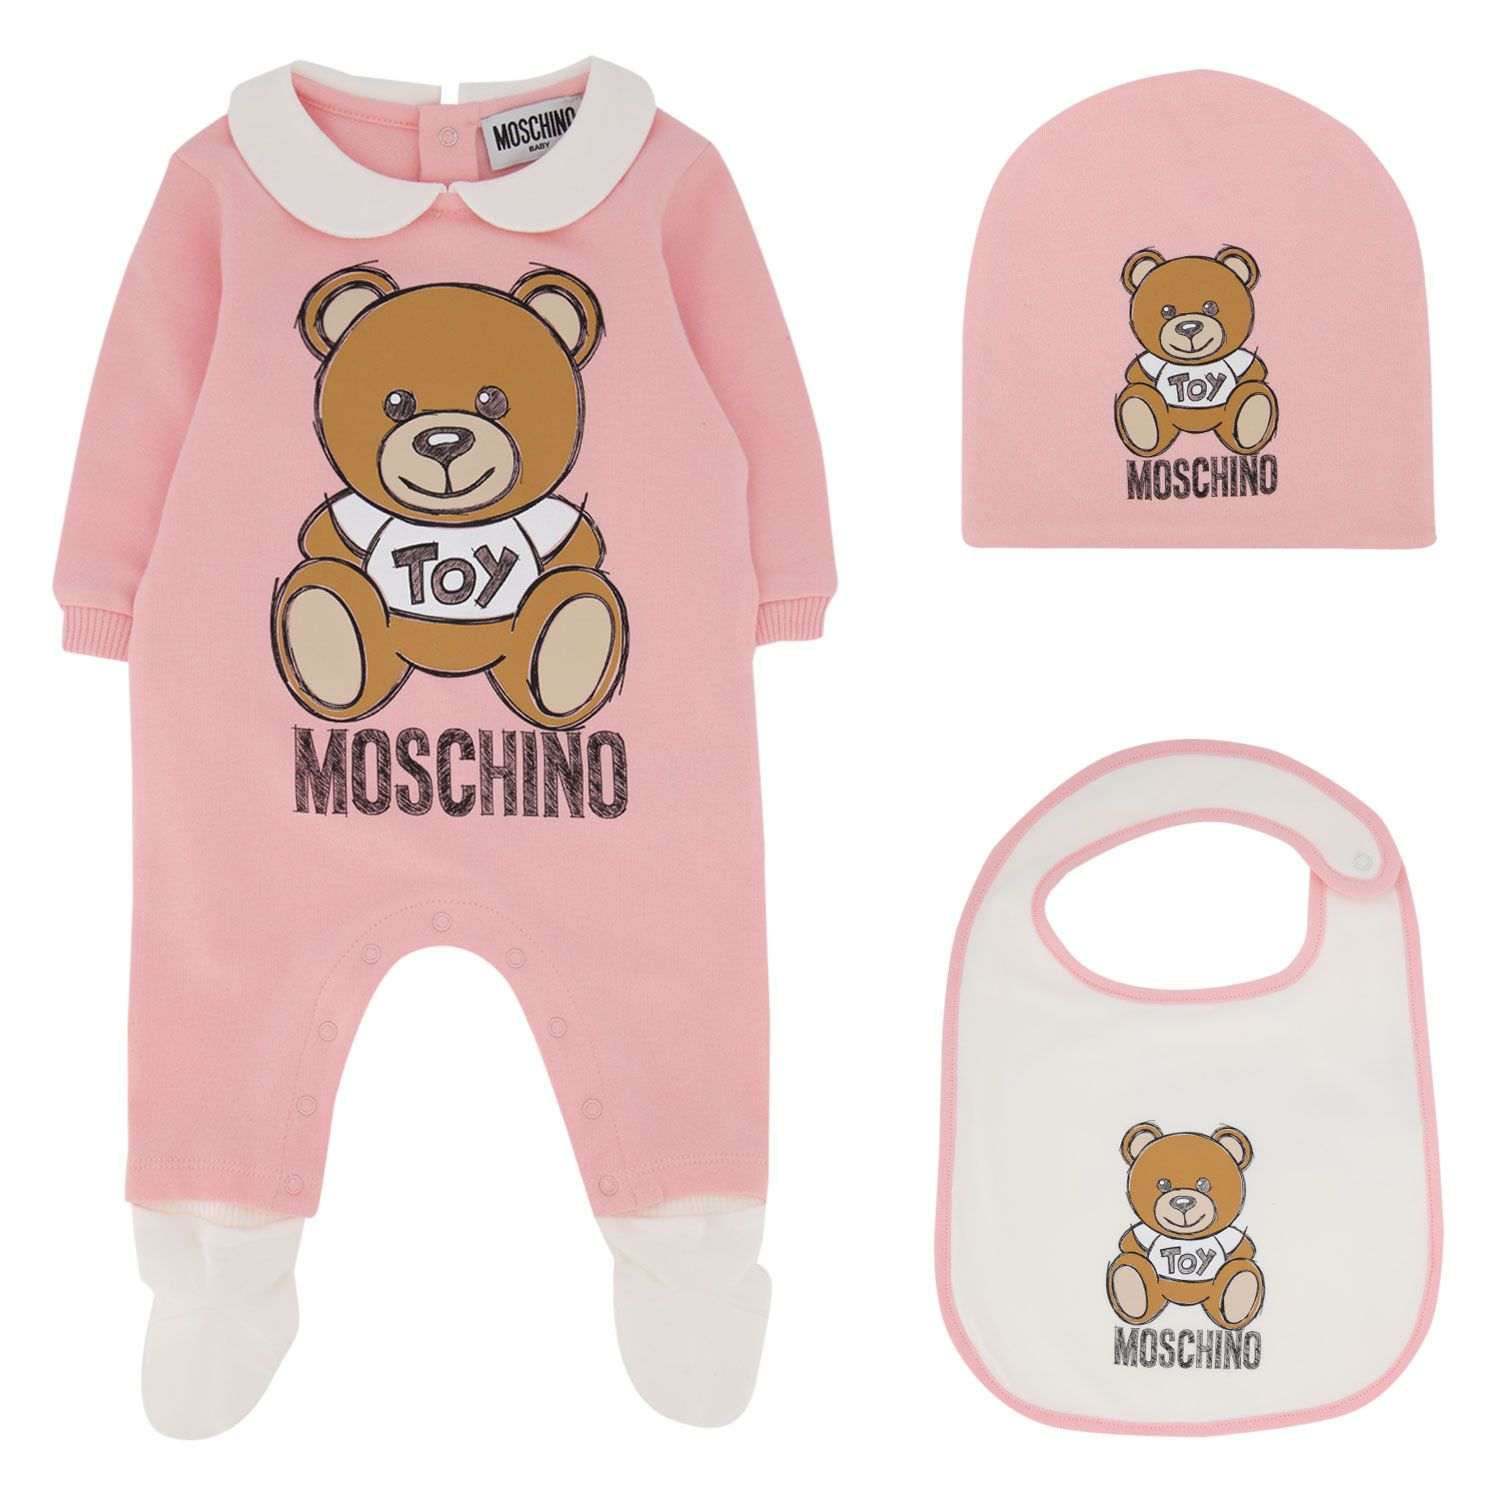 Picture of Moschino MUY033 baby playsuit light pink